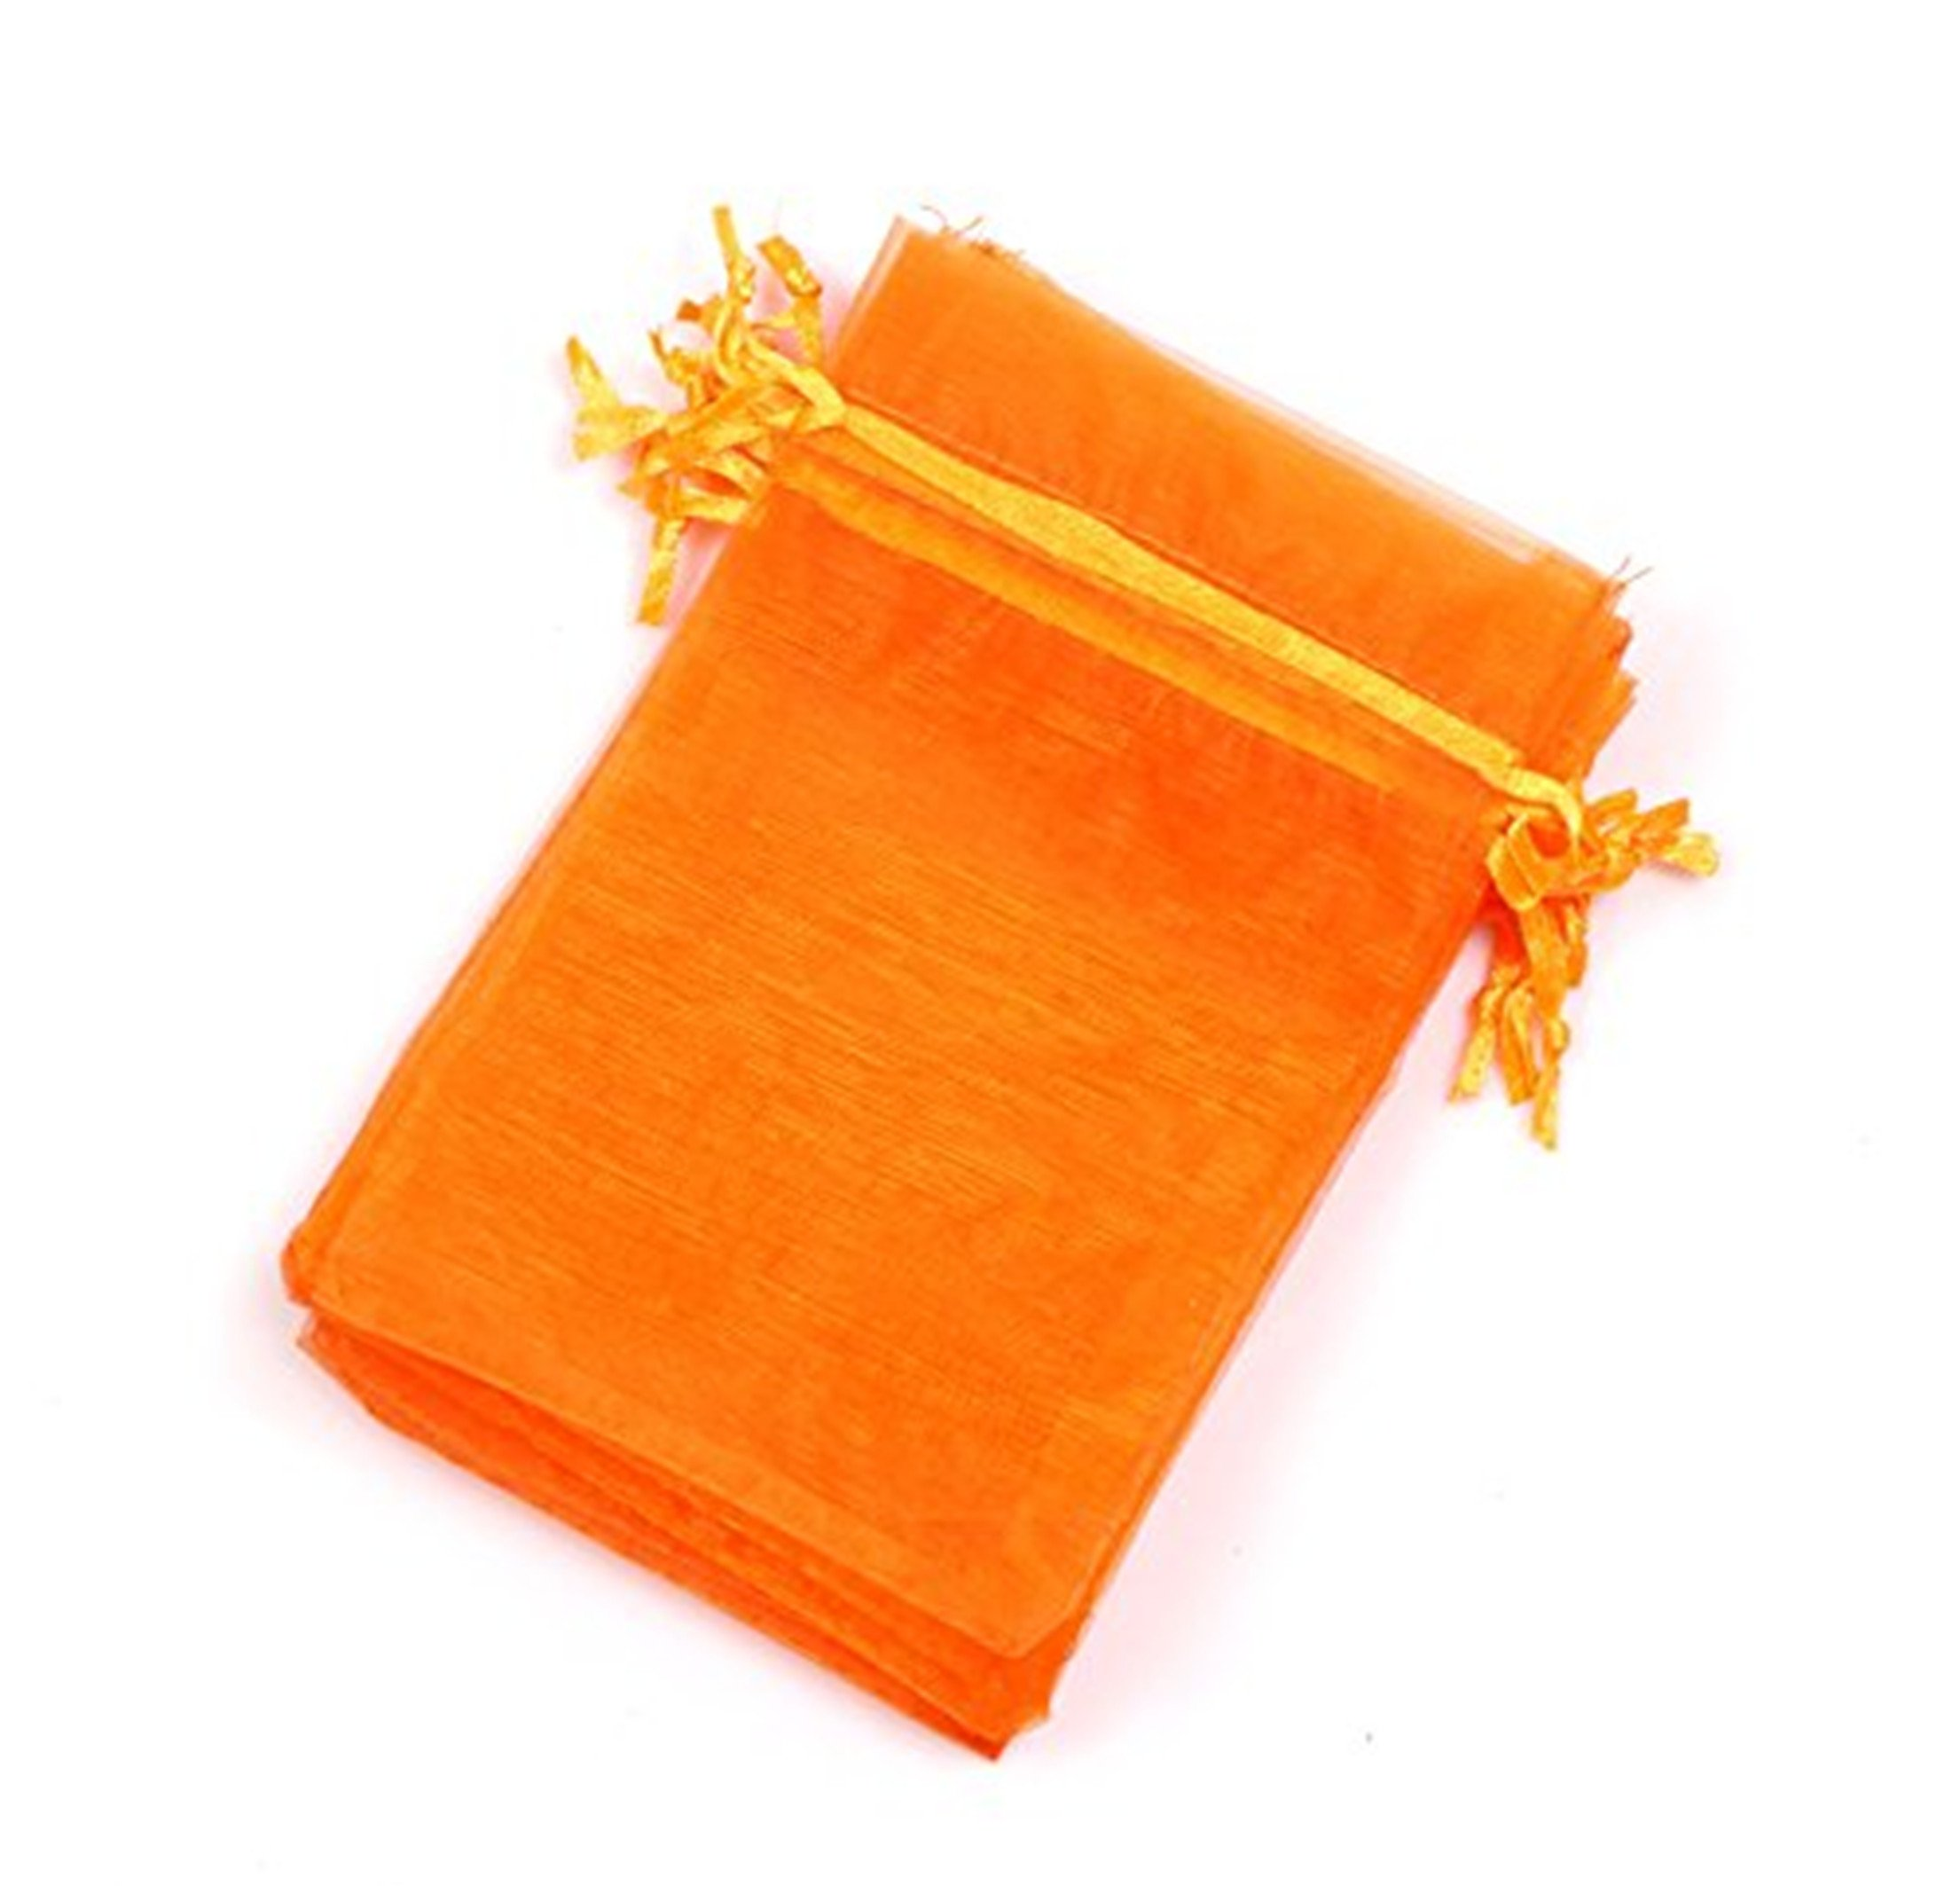 EDENKISS Orange Color Drawstring Organza Jewelry Pouch Bags 2.8x3.6'' 4x6'' 5x7'' 6x9'' (5x7'' 100Pcs)